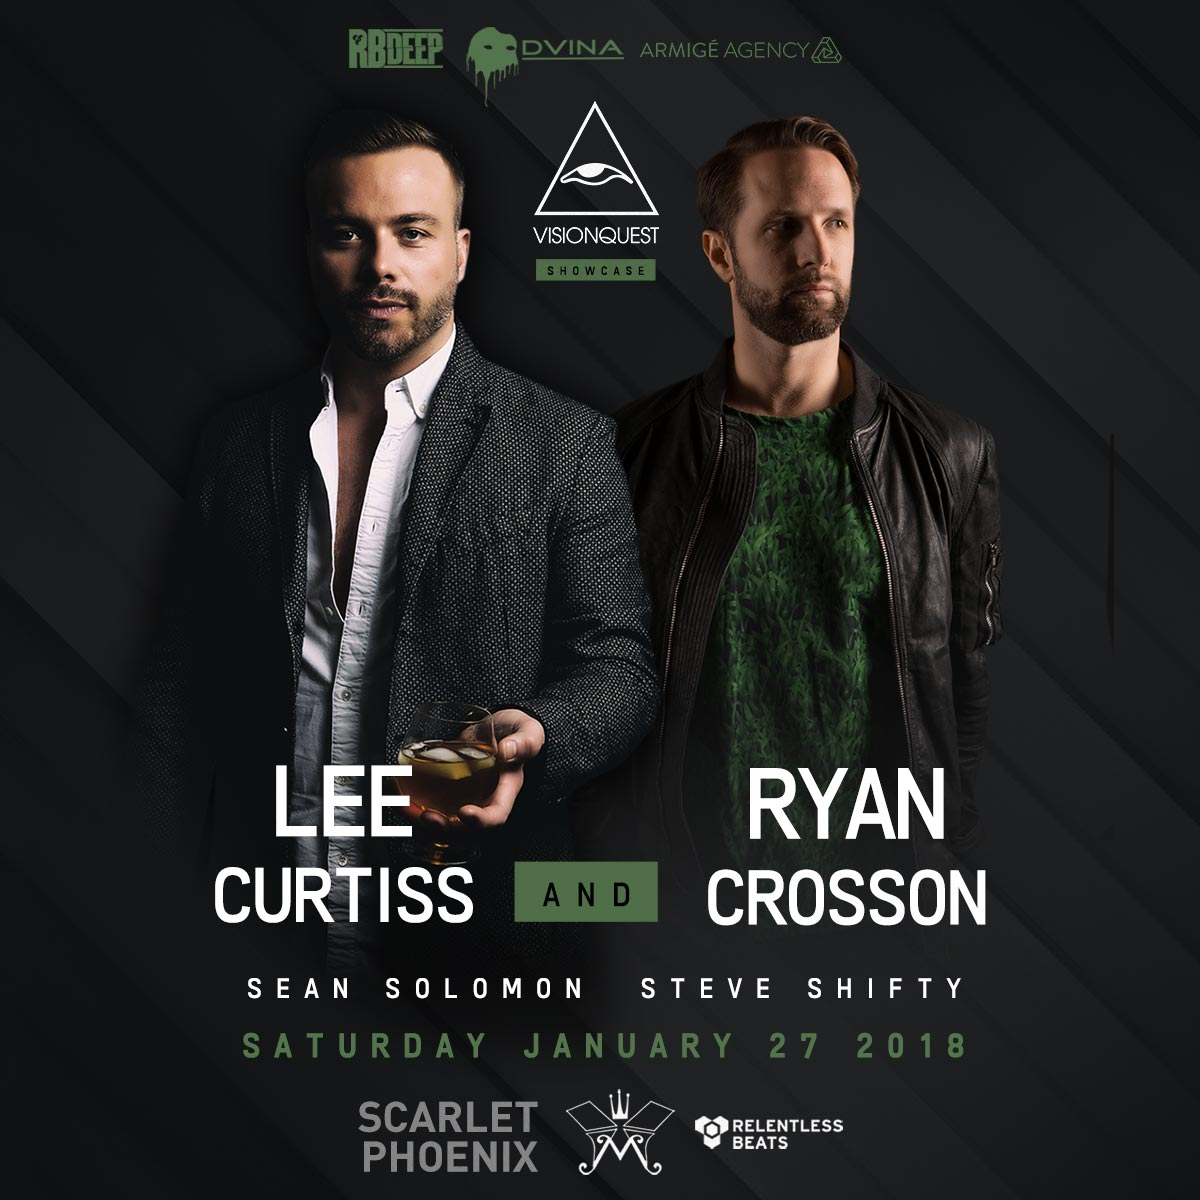 Flyer for Lee Curtiss & Ryan Crosson